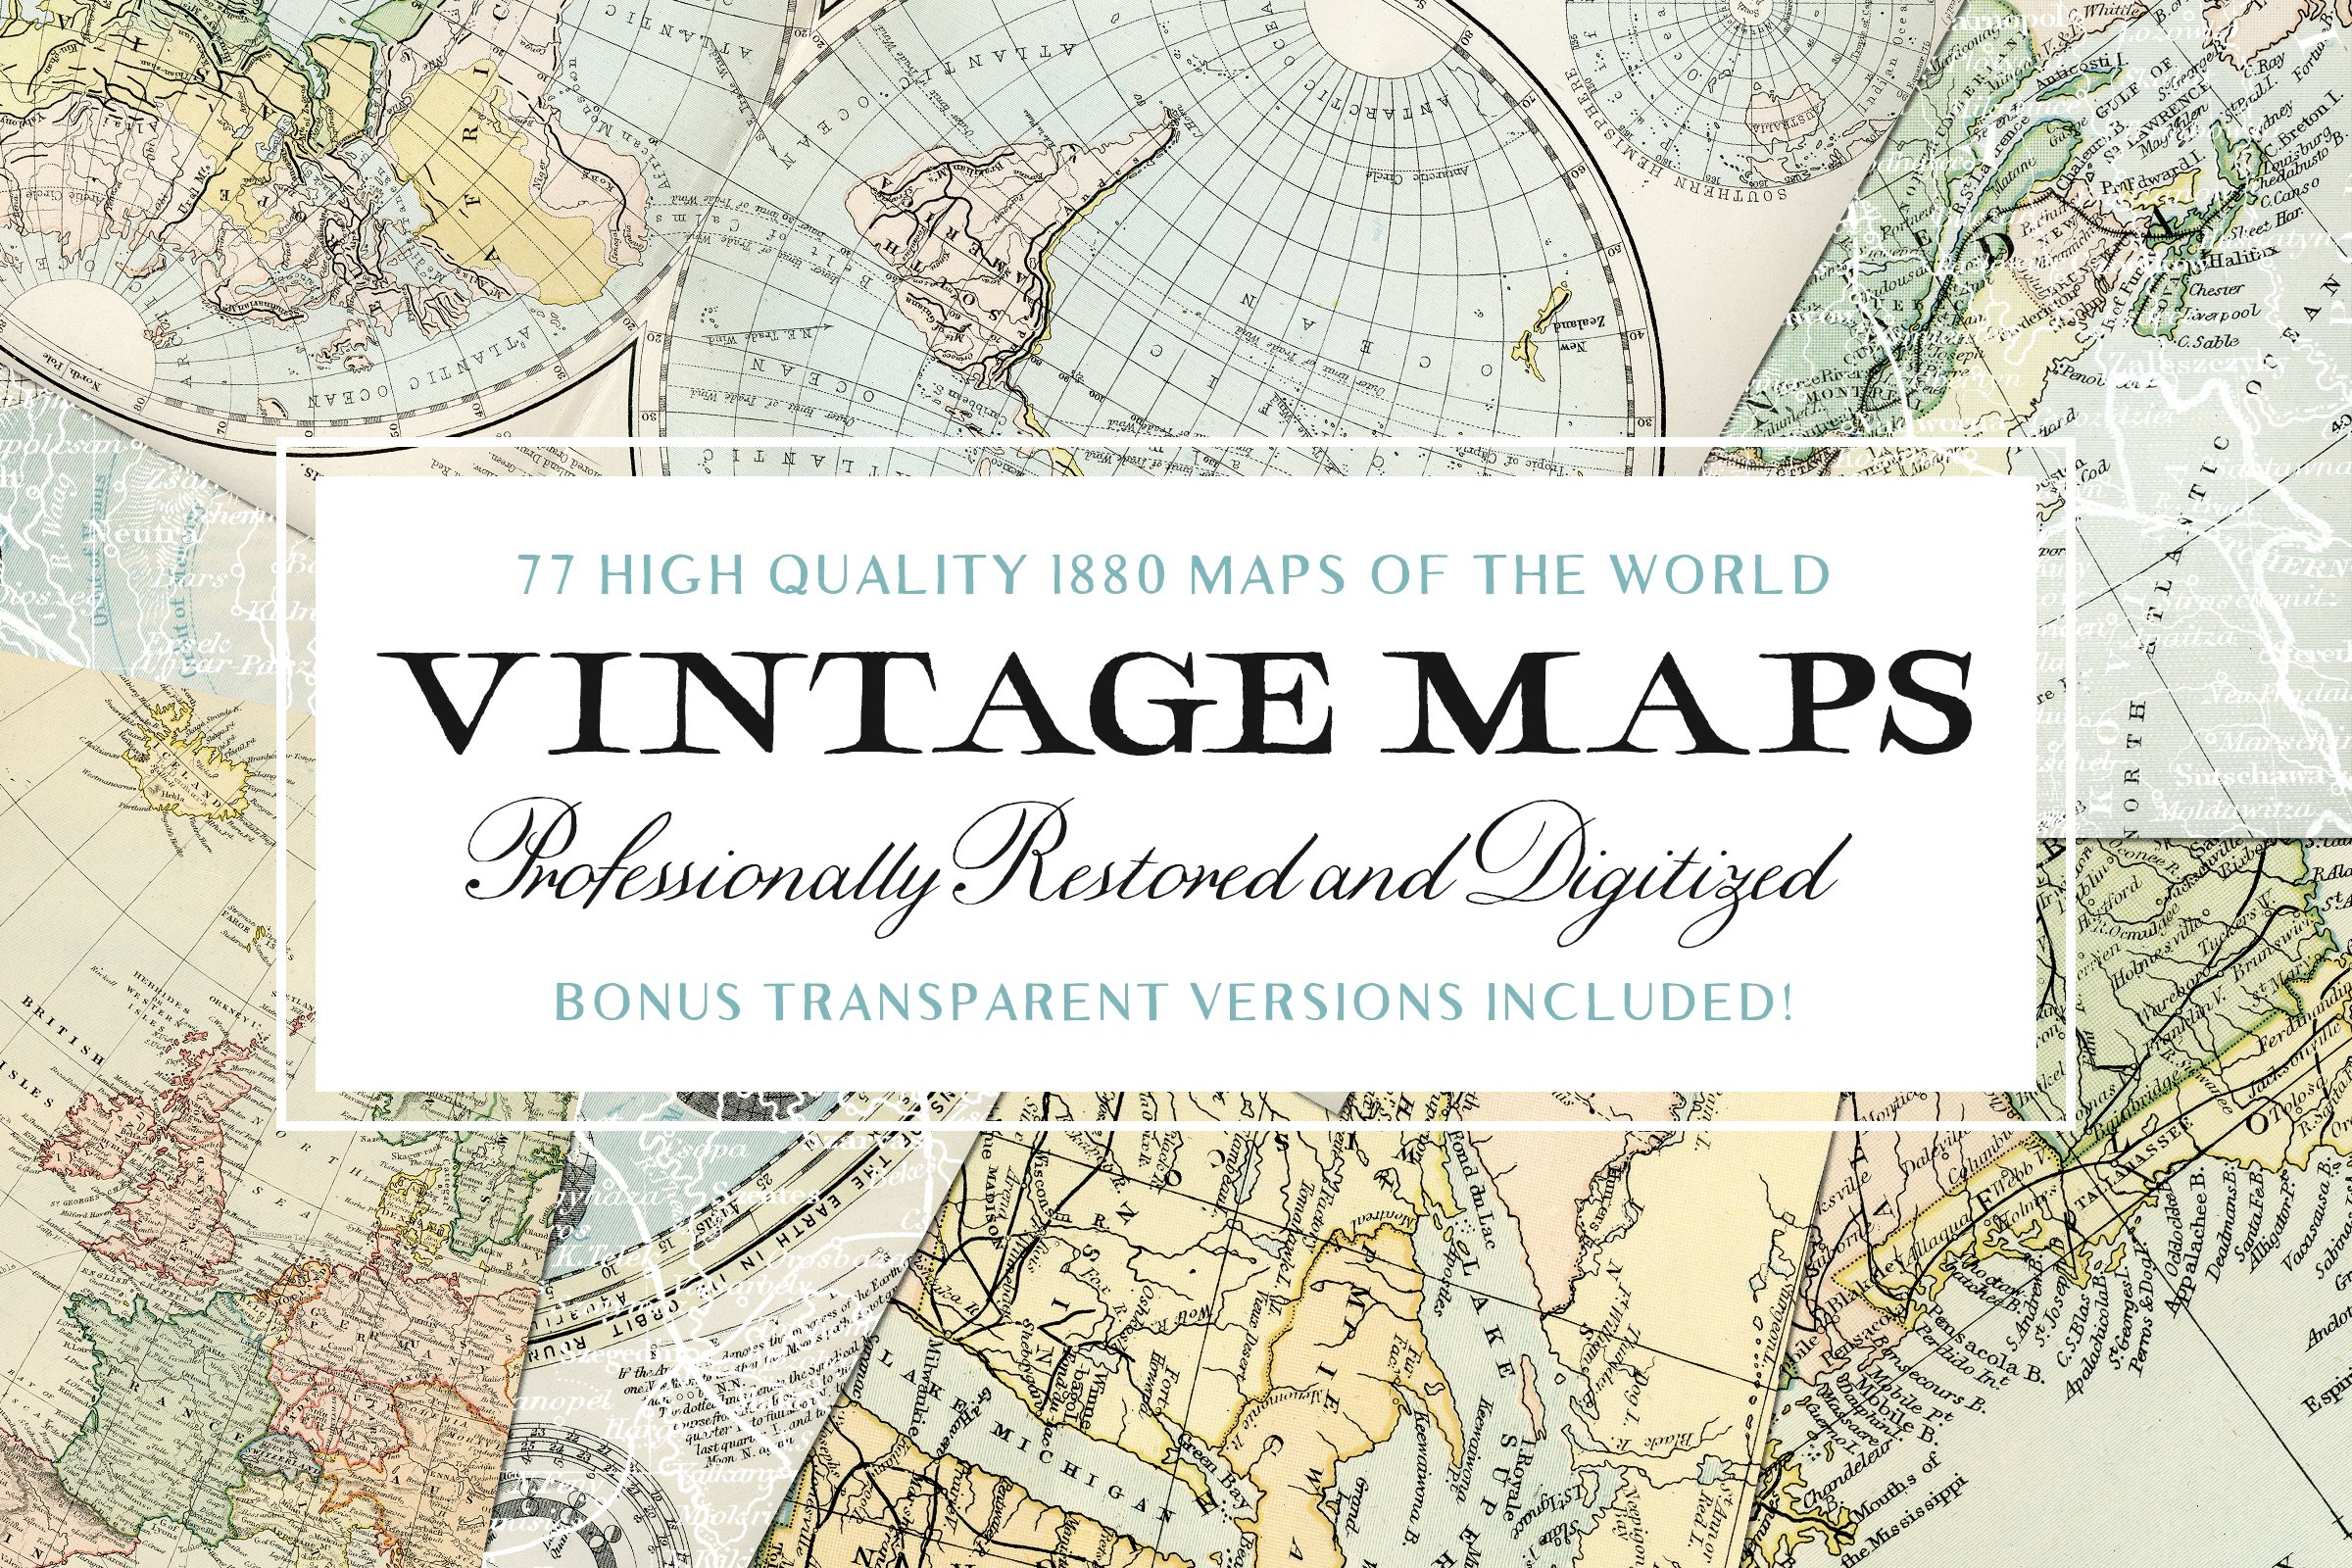 77 Vintage Maps of the World  Bonus  Objects  Creative Market